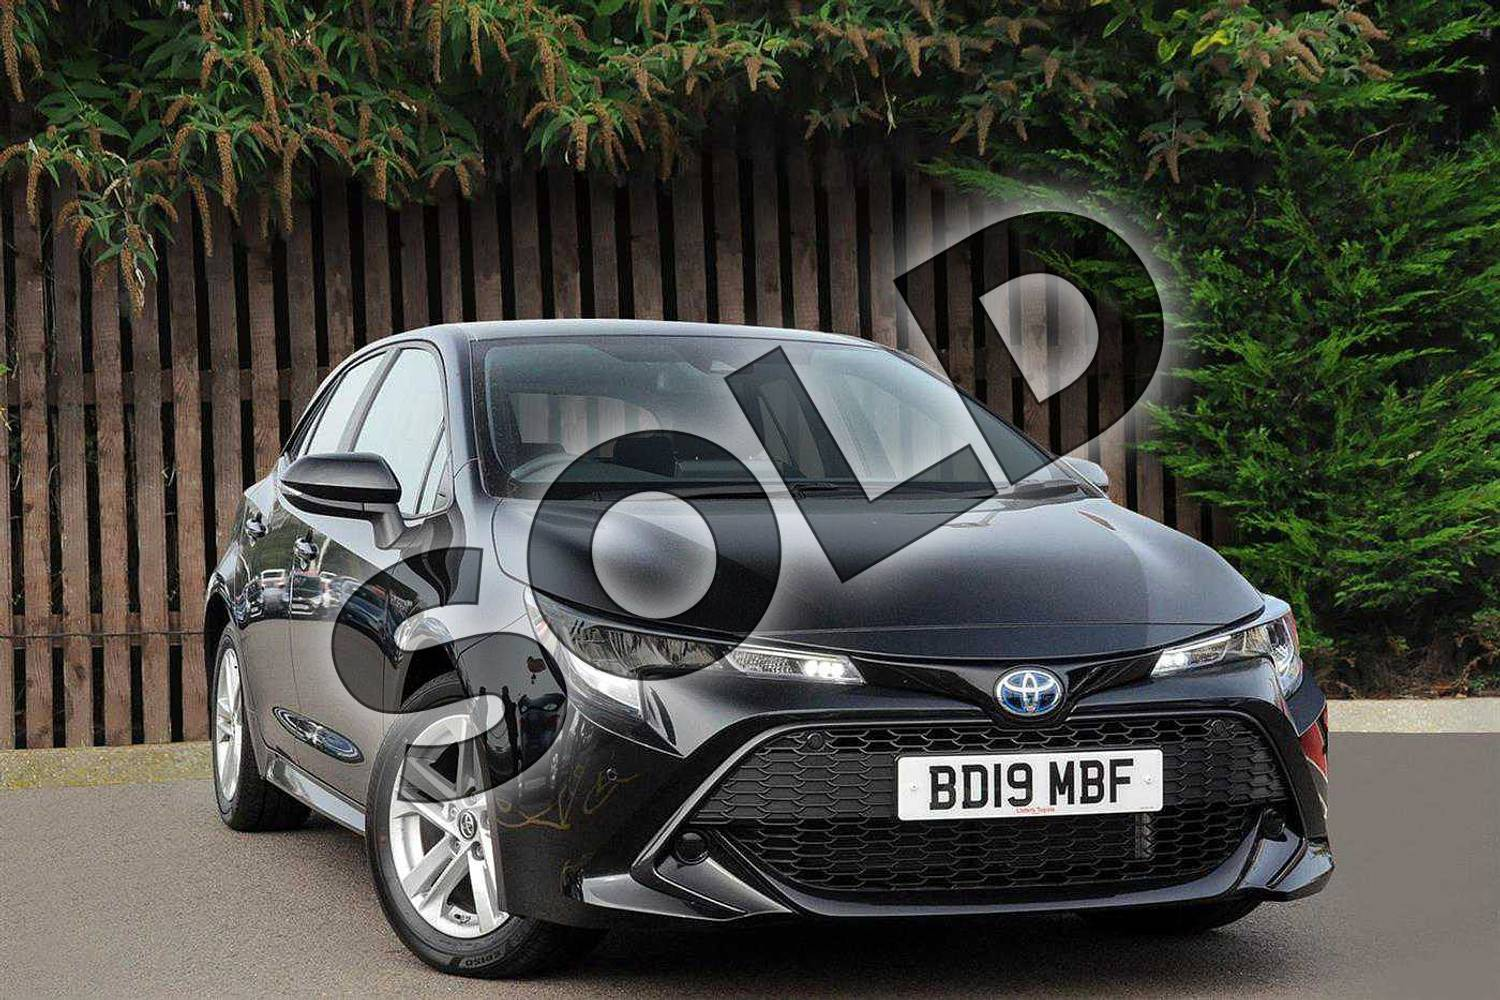 2019 Toyota Corolla Hatchback 1.8 VVT-i Hybrid Icon Tech 5dr CVT in Eclipse Black at Listers Toyota Coventry